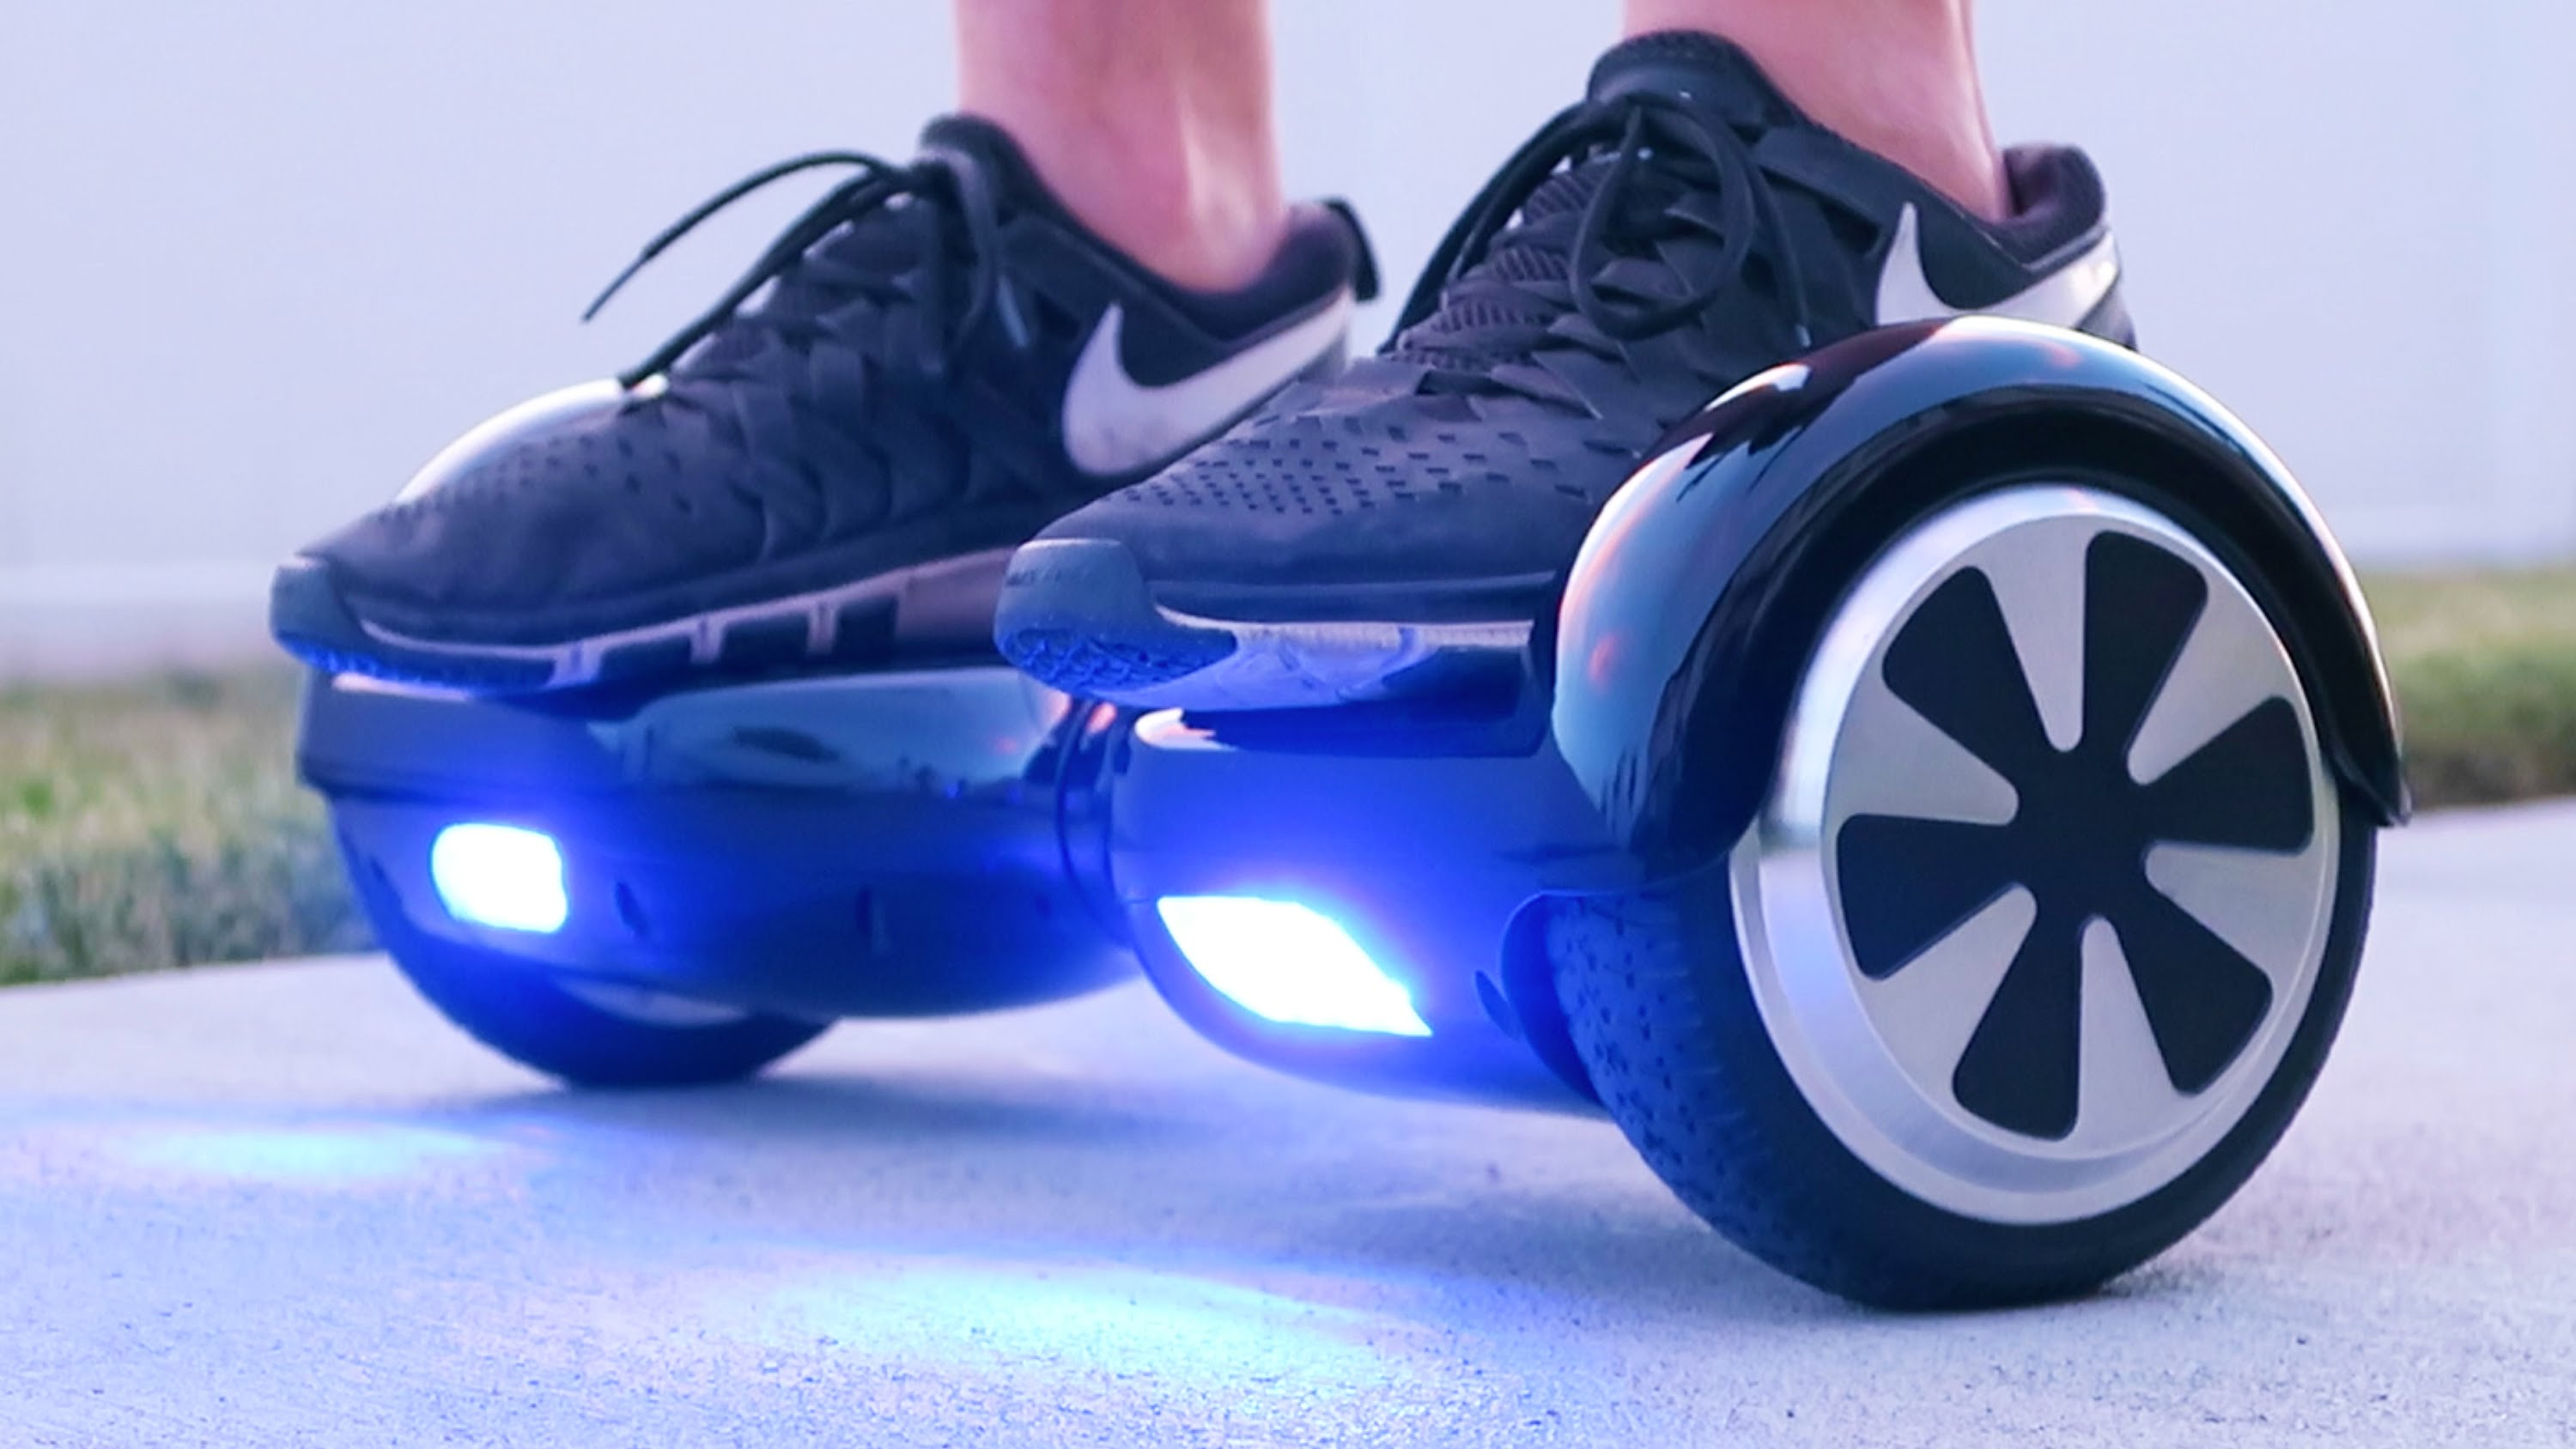 Hoverboard & airbords